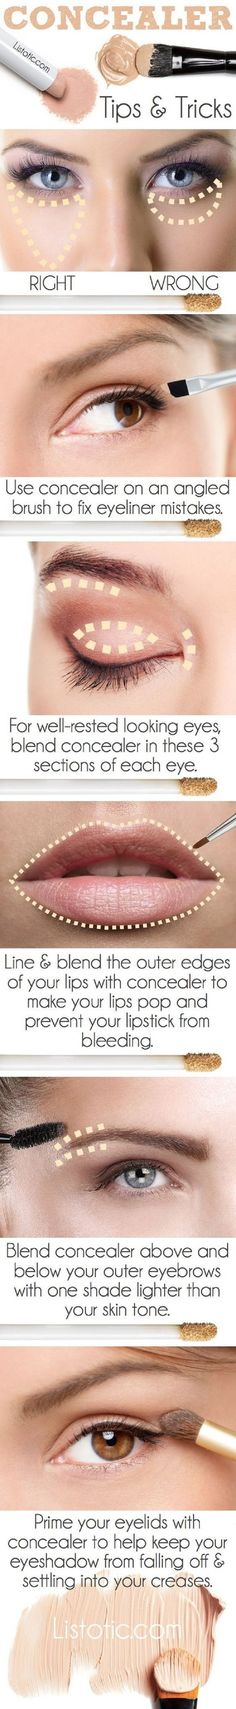 Use Your Concealer The Right Way - 13 Best Makeup Tutorials and Infographics for Beginners #acnemakeuptutorial,